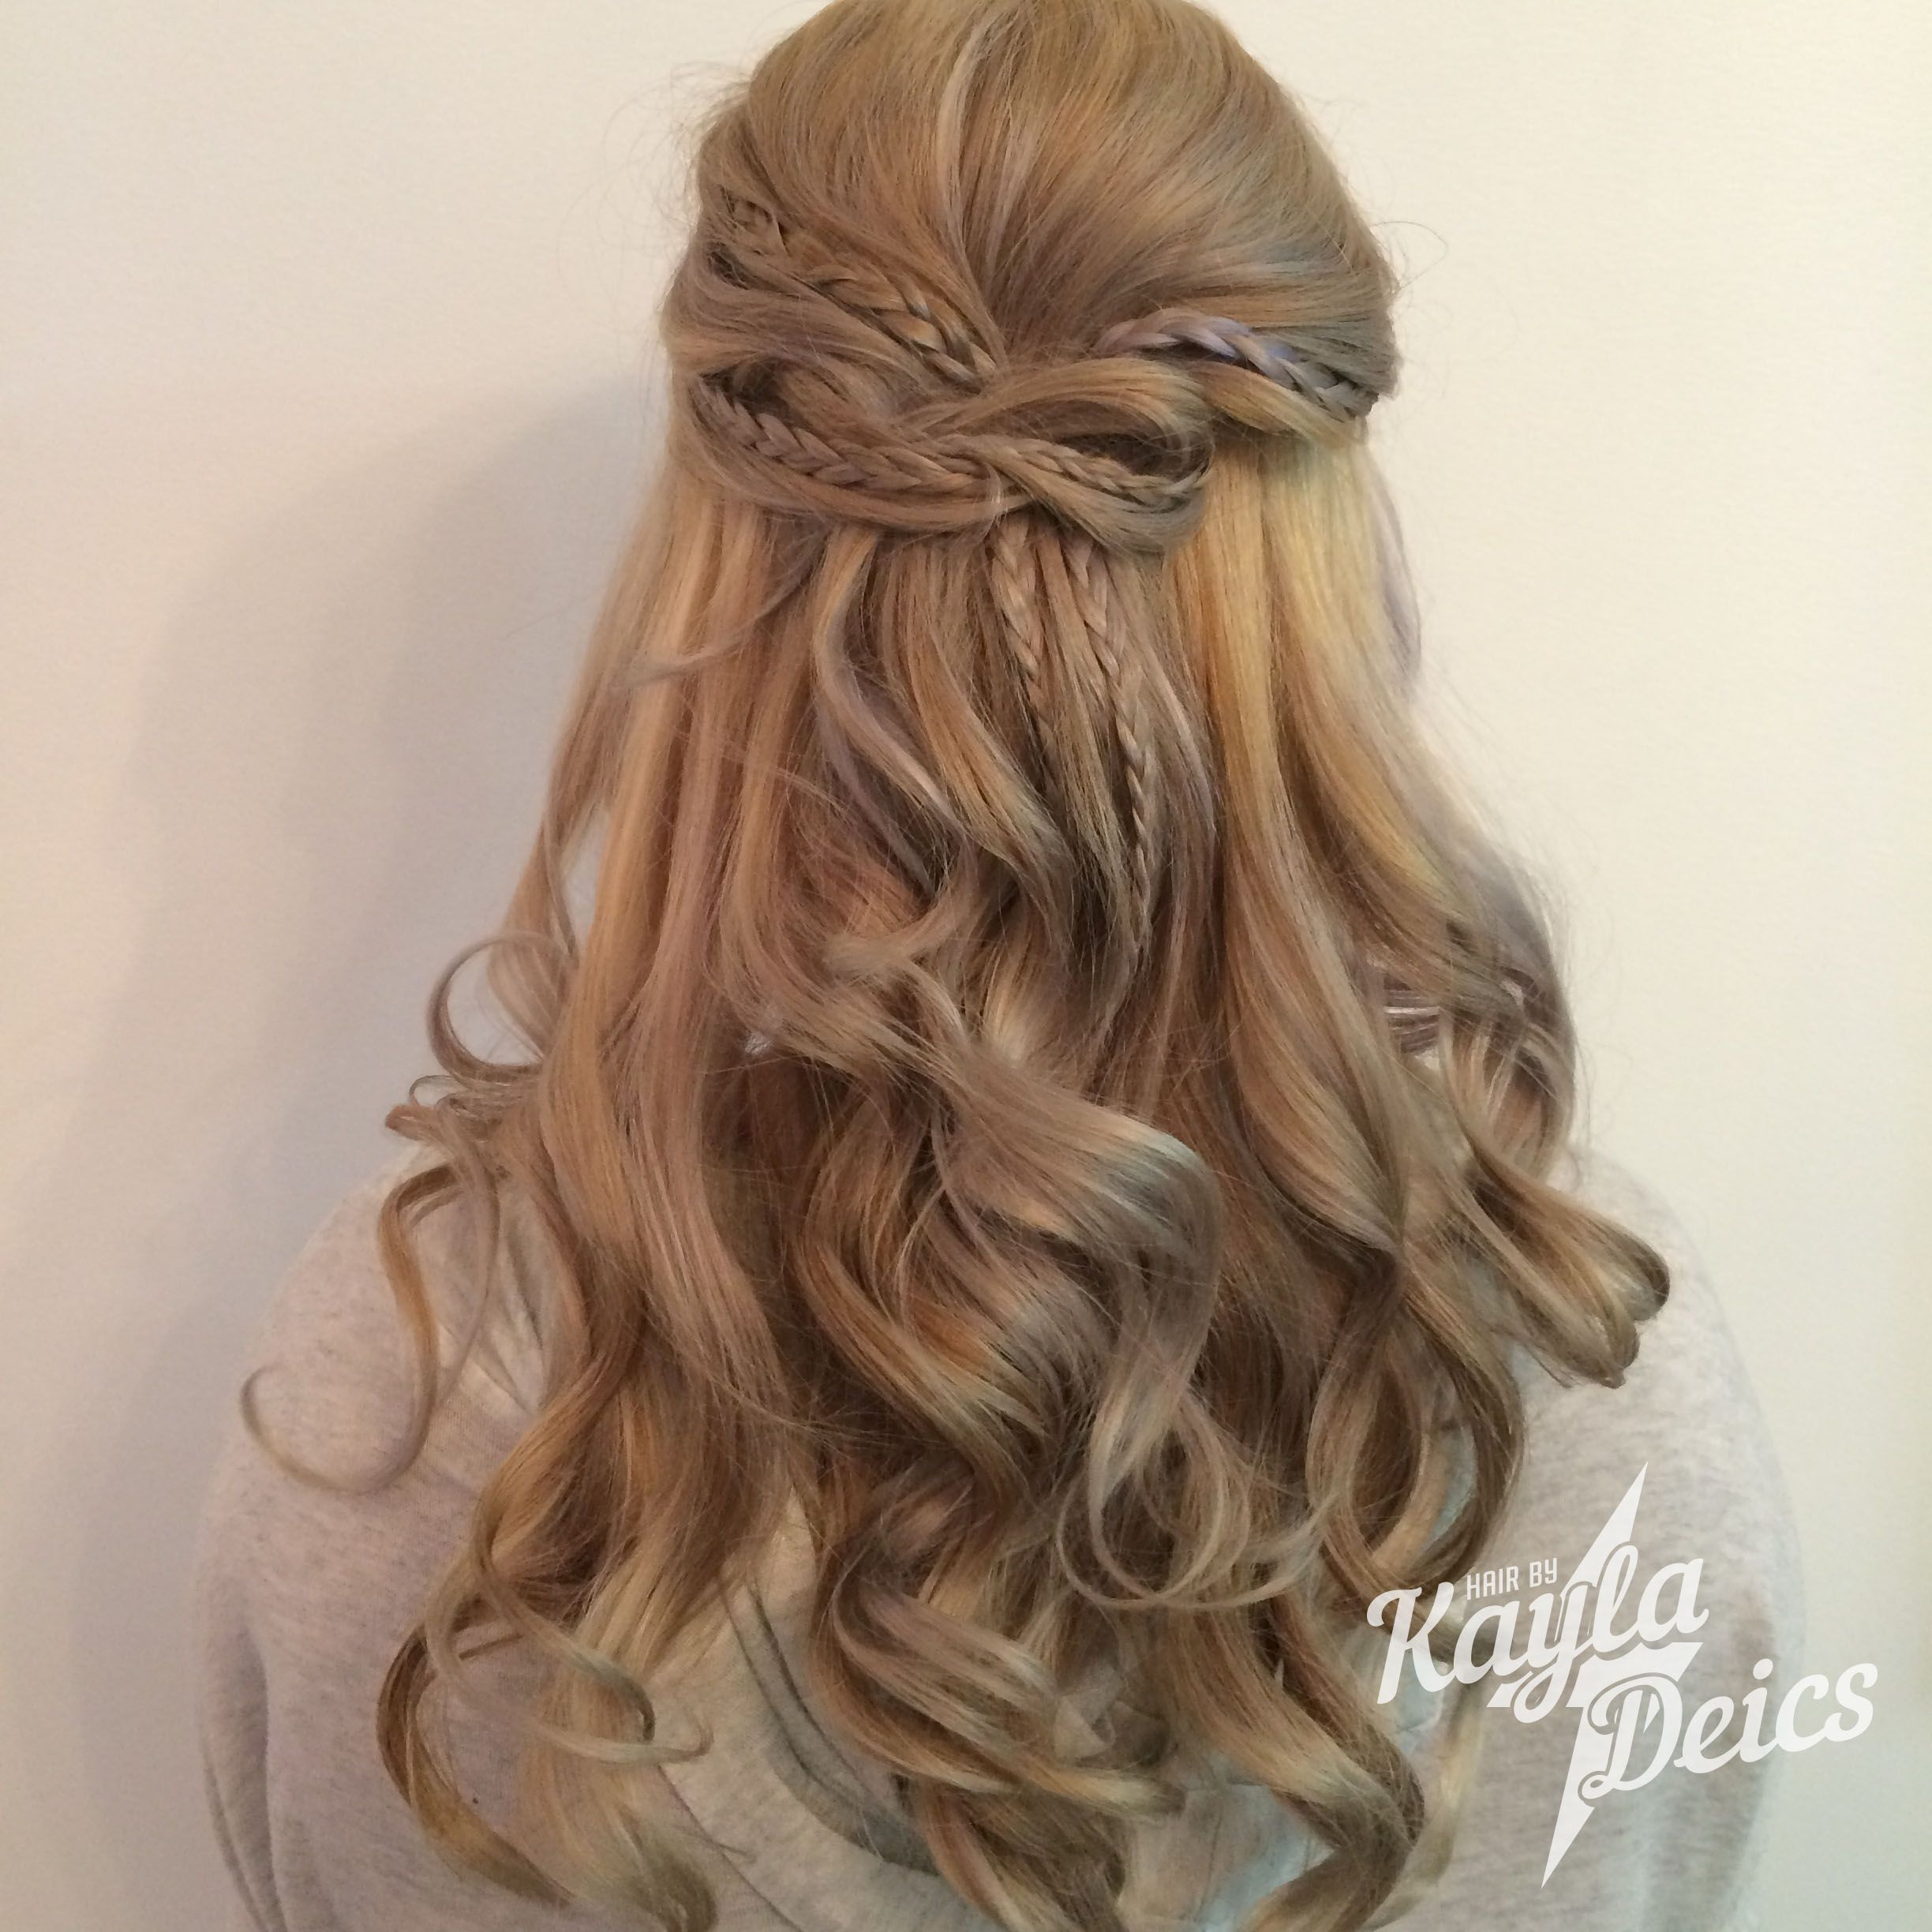 Hair By Kdeics Festival Up Style With A Dimensional Blonde Princess Hairstyles Hair Styles Hair